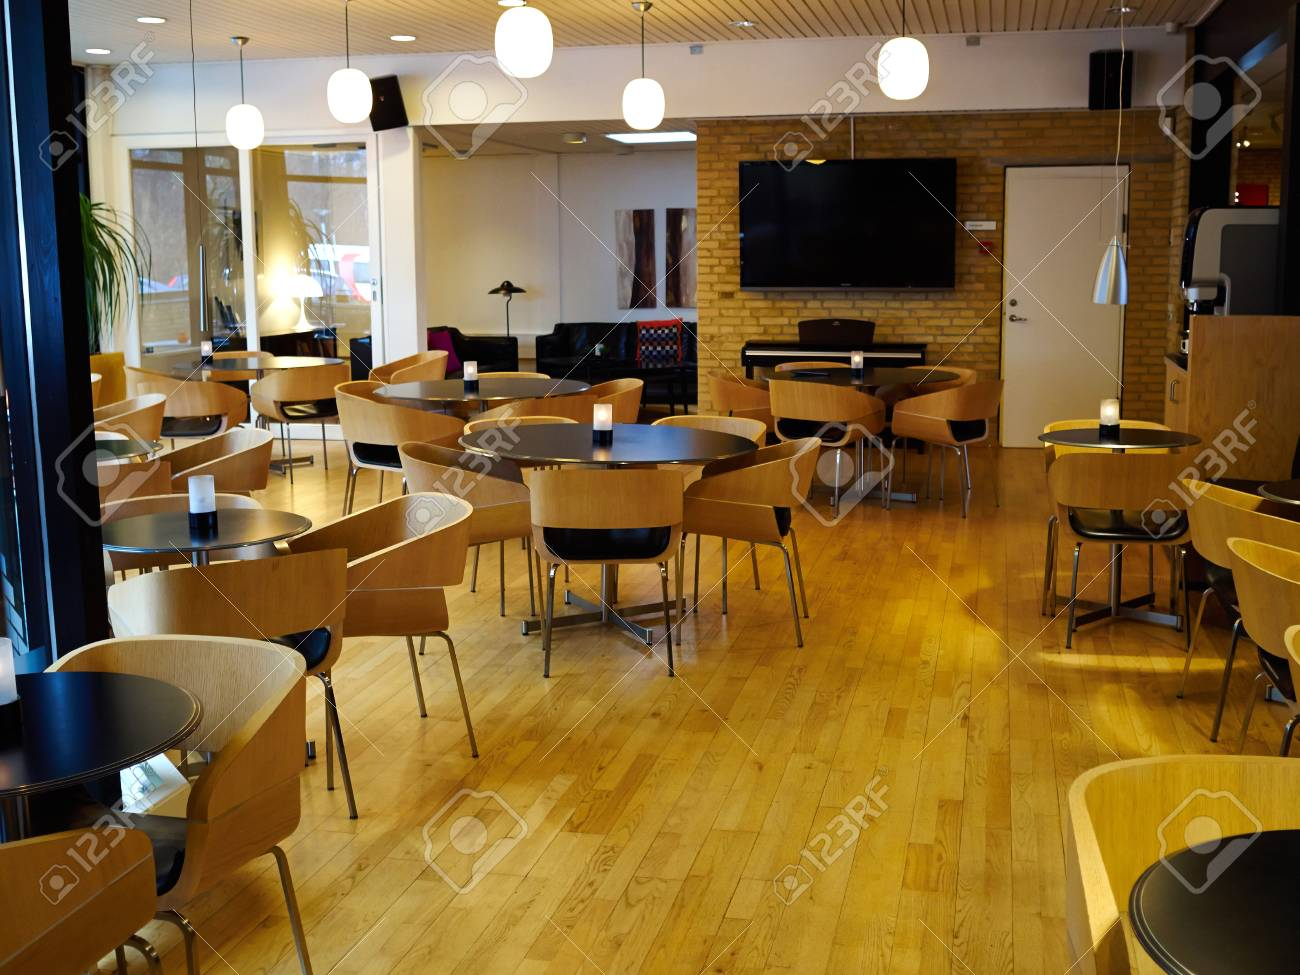 Modern Classical Design Coffee Shop Cafe Restaurant Interior Stock Photo Picture And Royalty Free Image Image 73983910